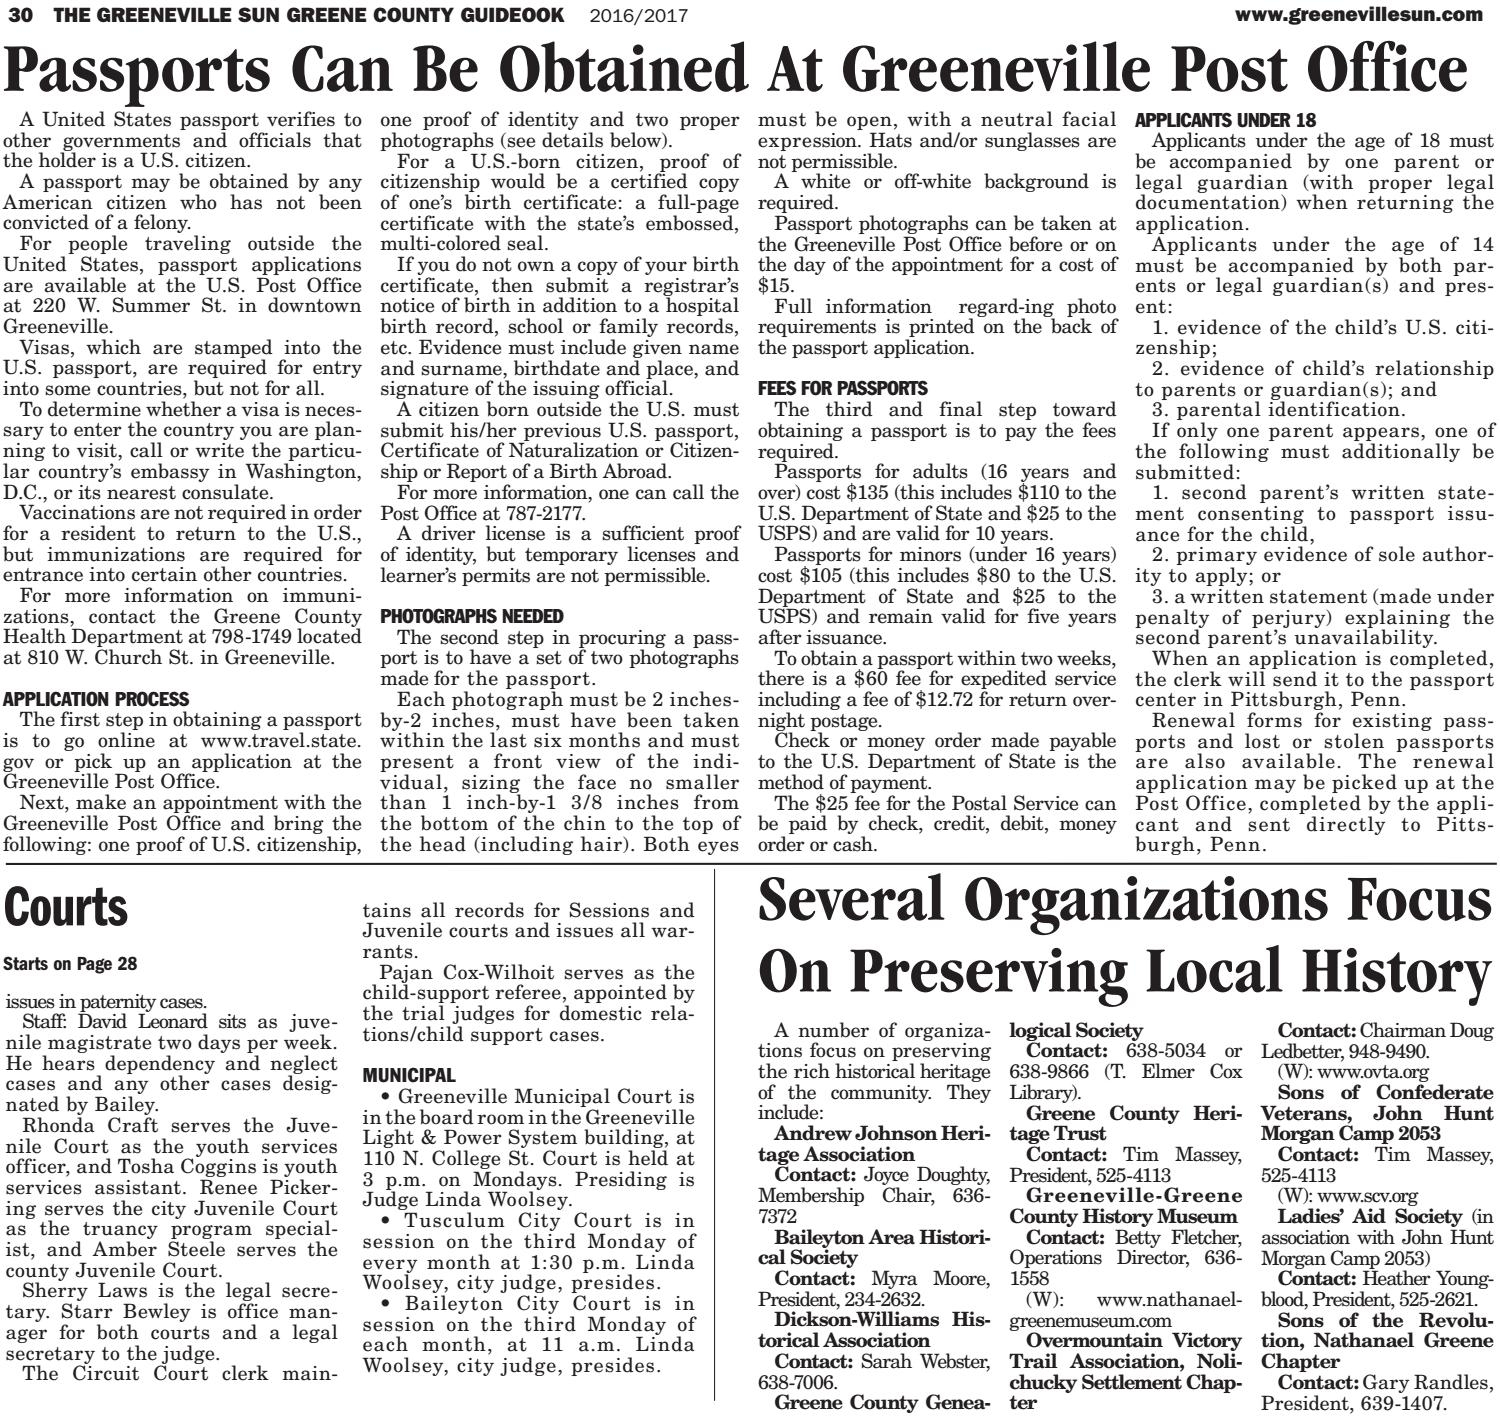 The Greeneville Sun: Guidebook 2016-17 by The Greeneville